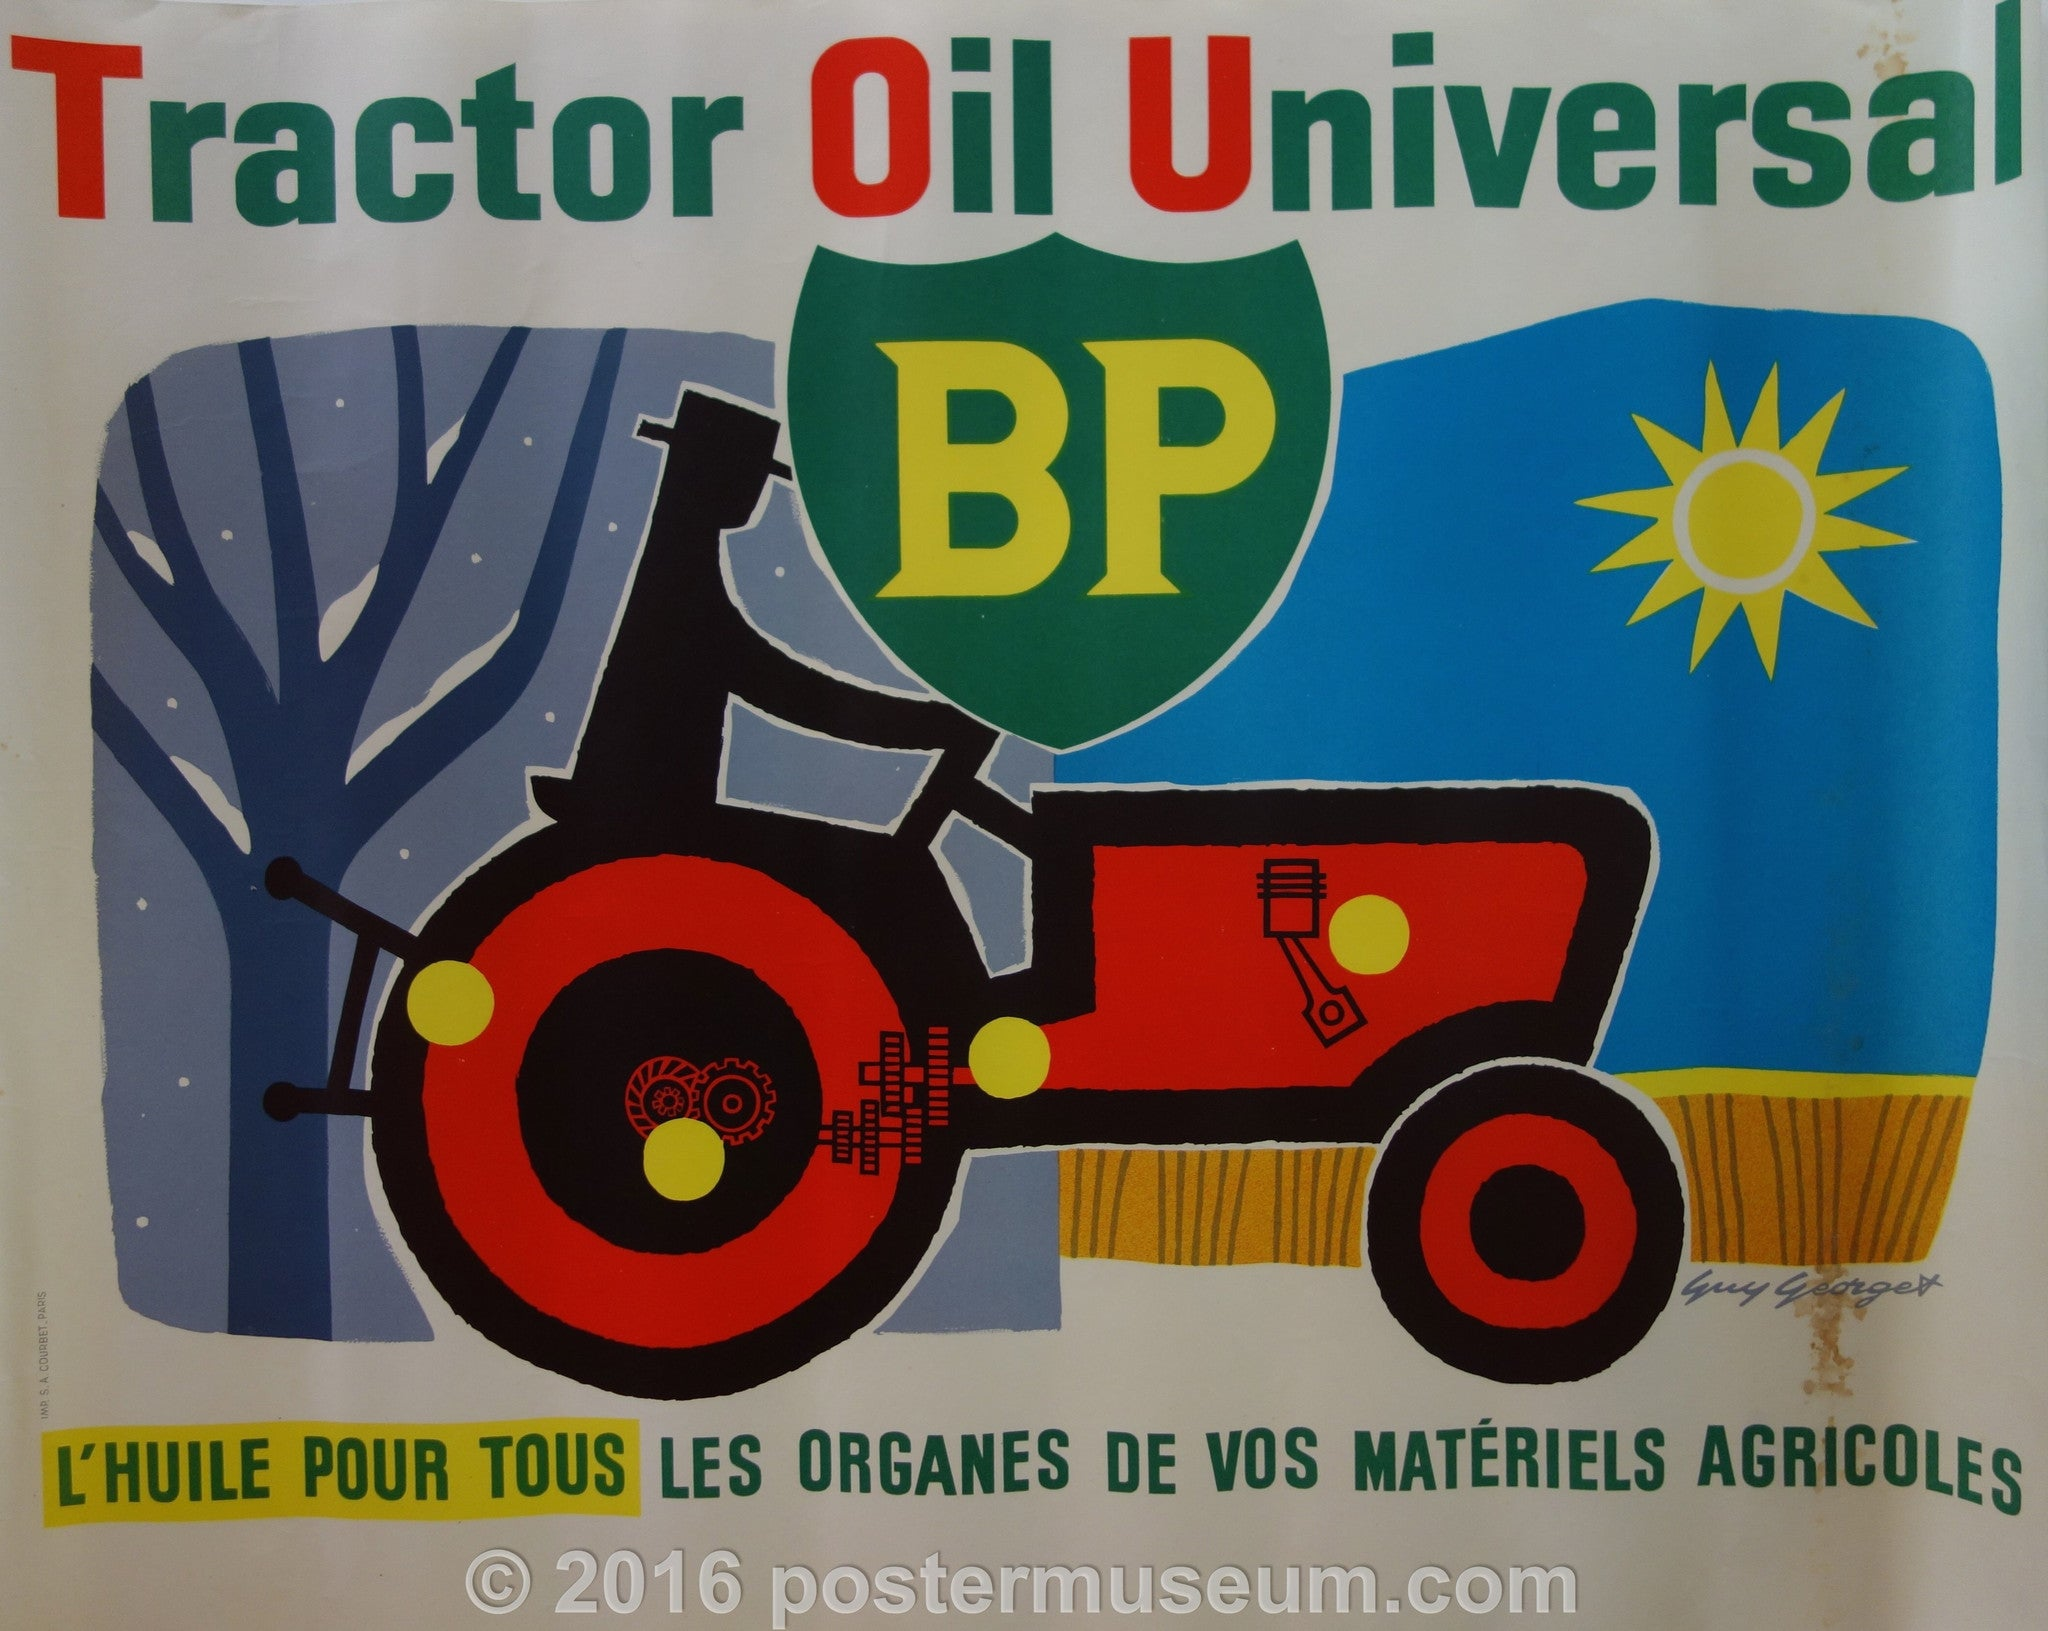 Tractor Oil Universal